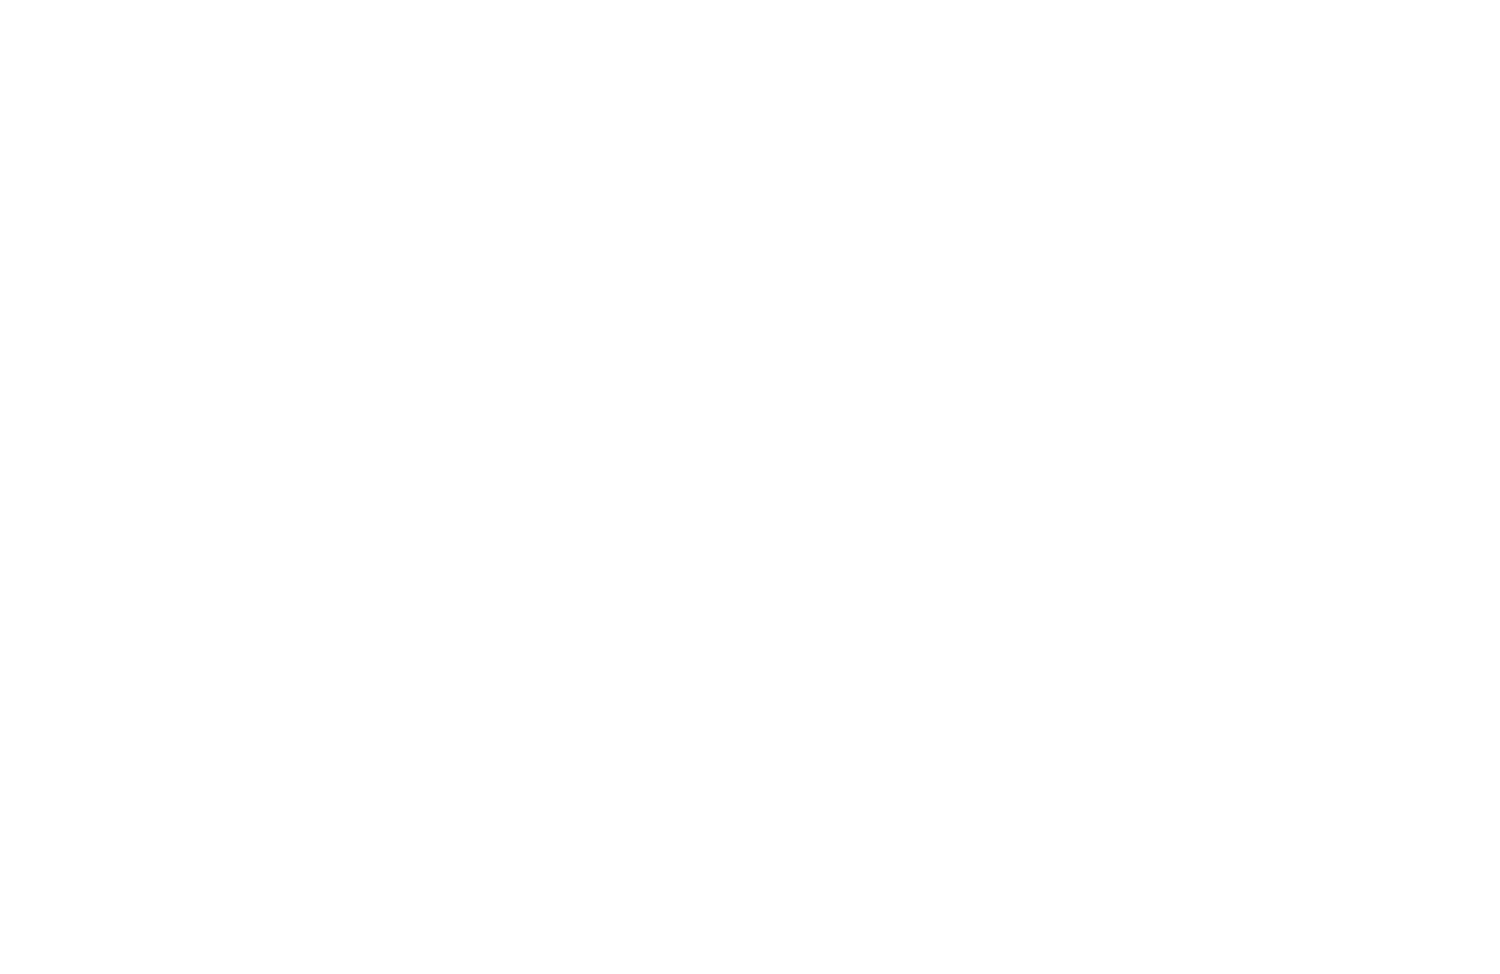 Cypress Design Group